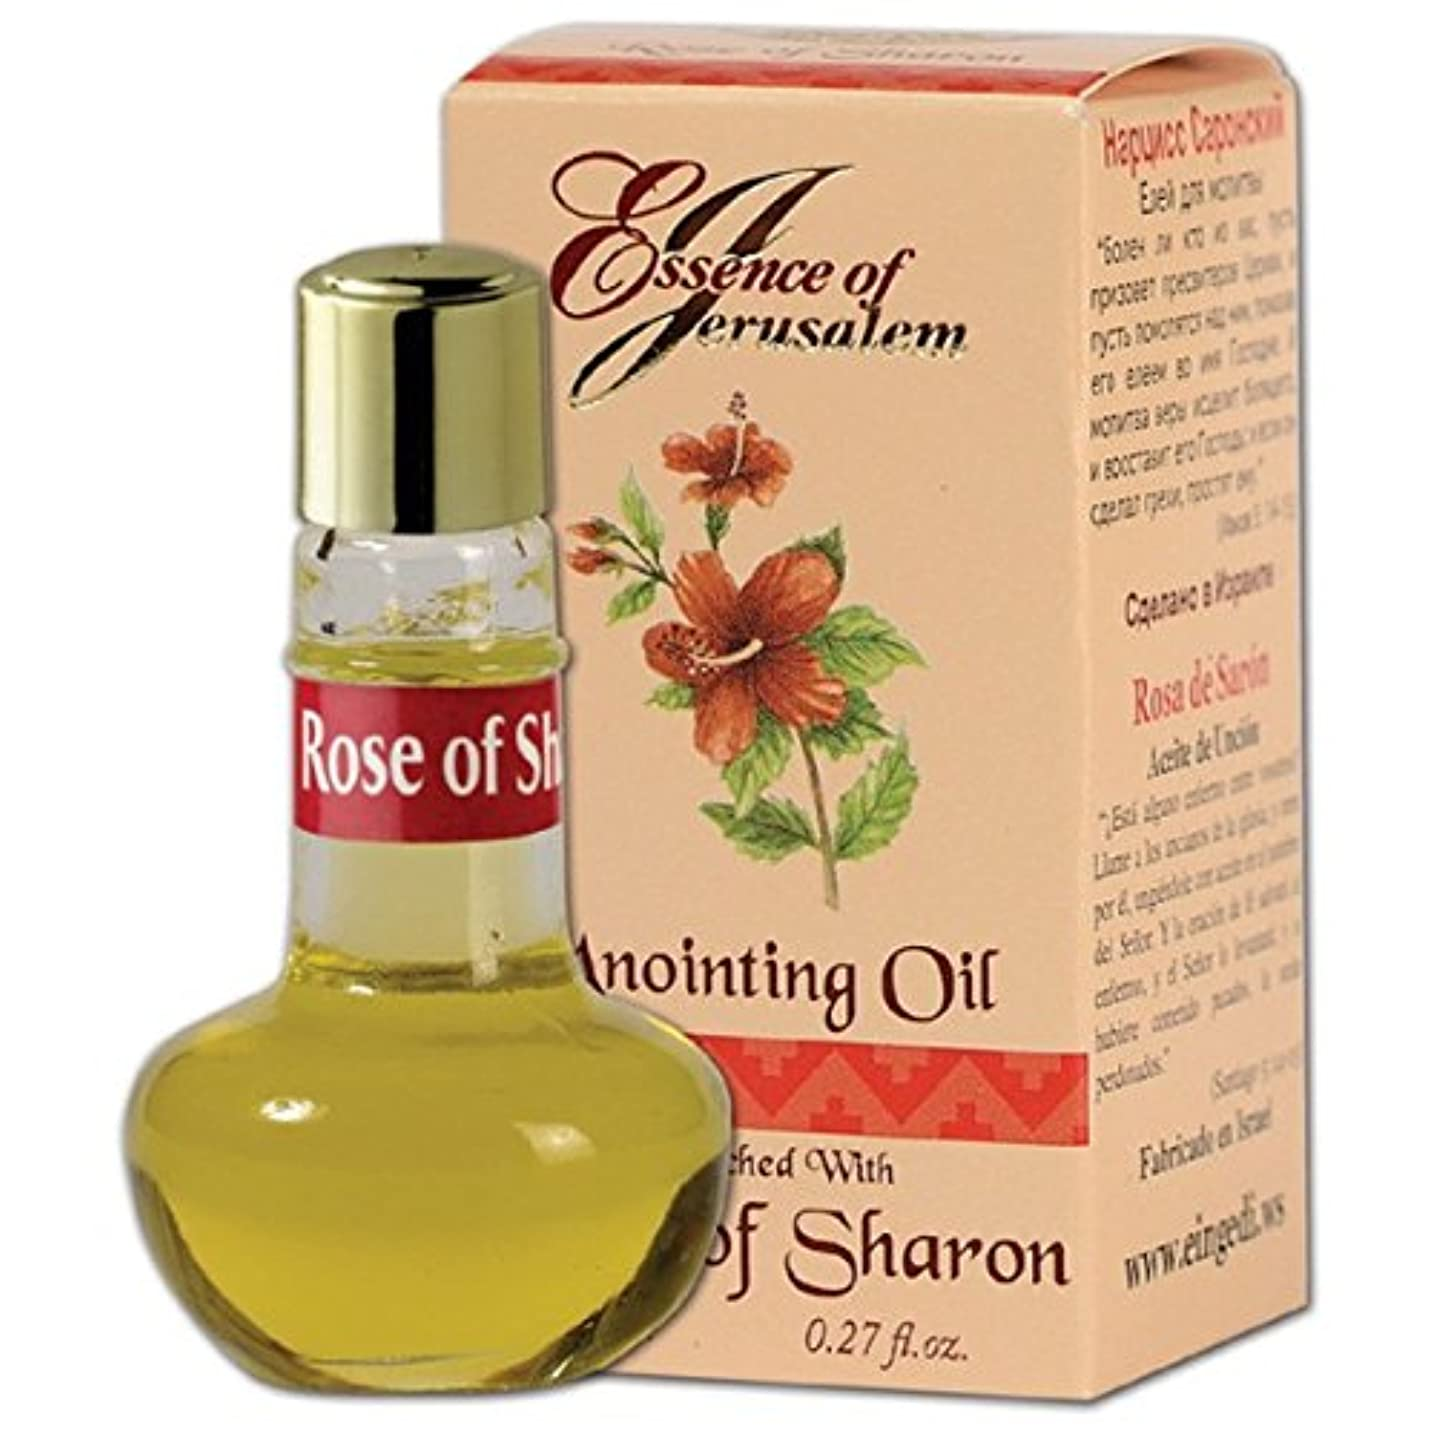 カテゴリー修理工ダイバーEssence of Jerusalem Anointing Oil Enriched with Biblicalスパイス0.27 FL OZ byベツレヘムギフトTM